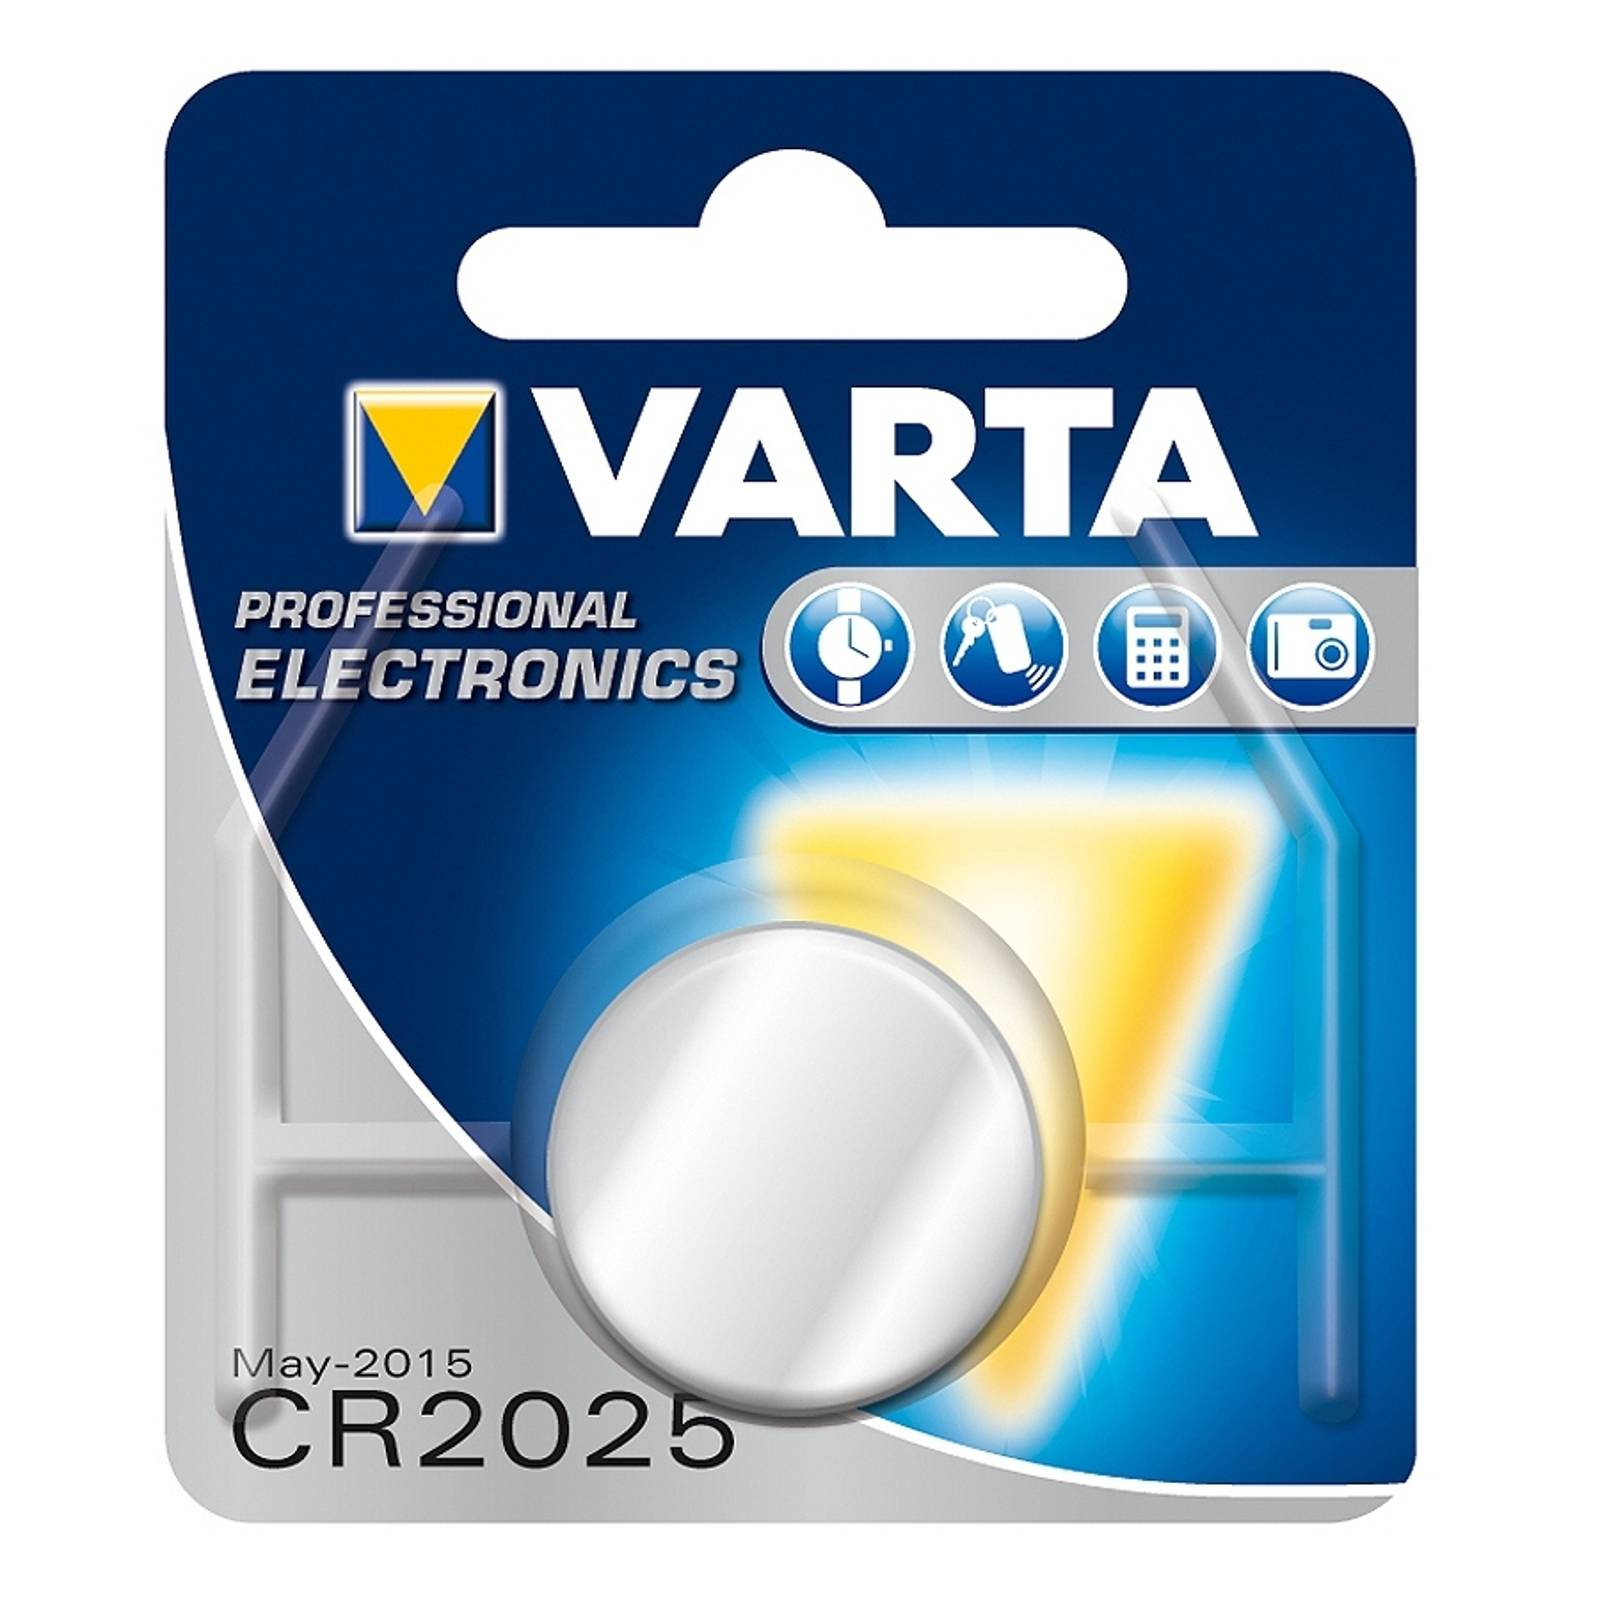 CR2025 3 V 165 mAh lithium button cell from Varta